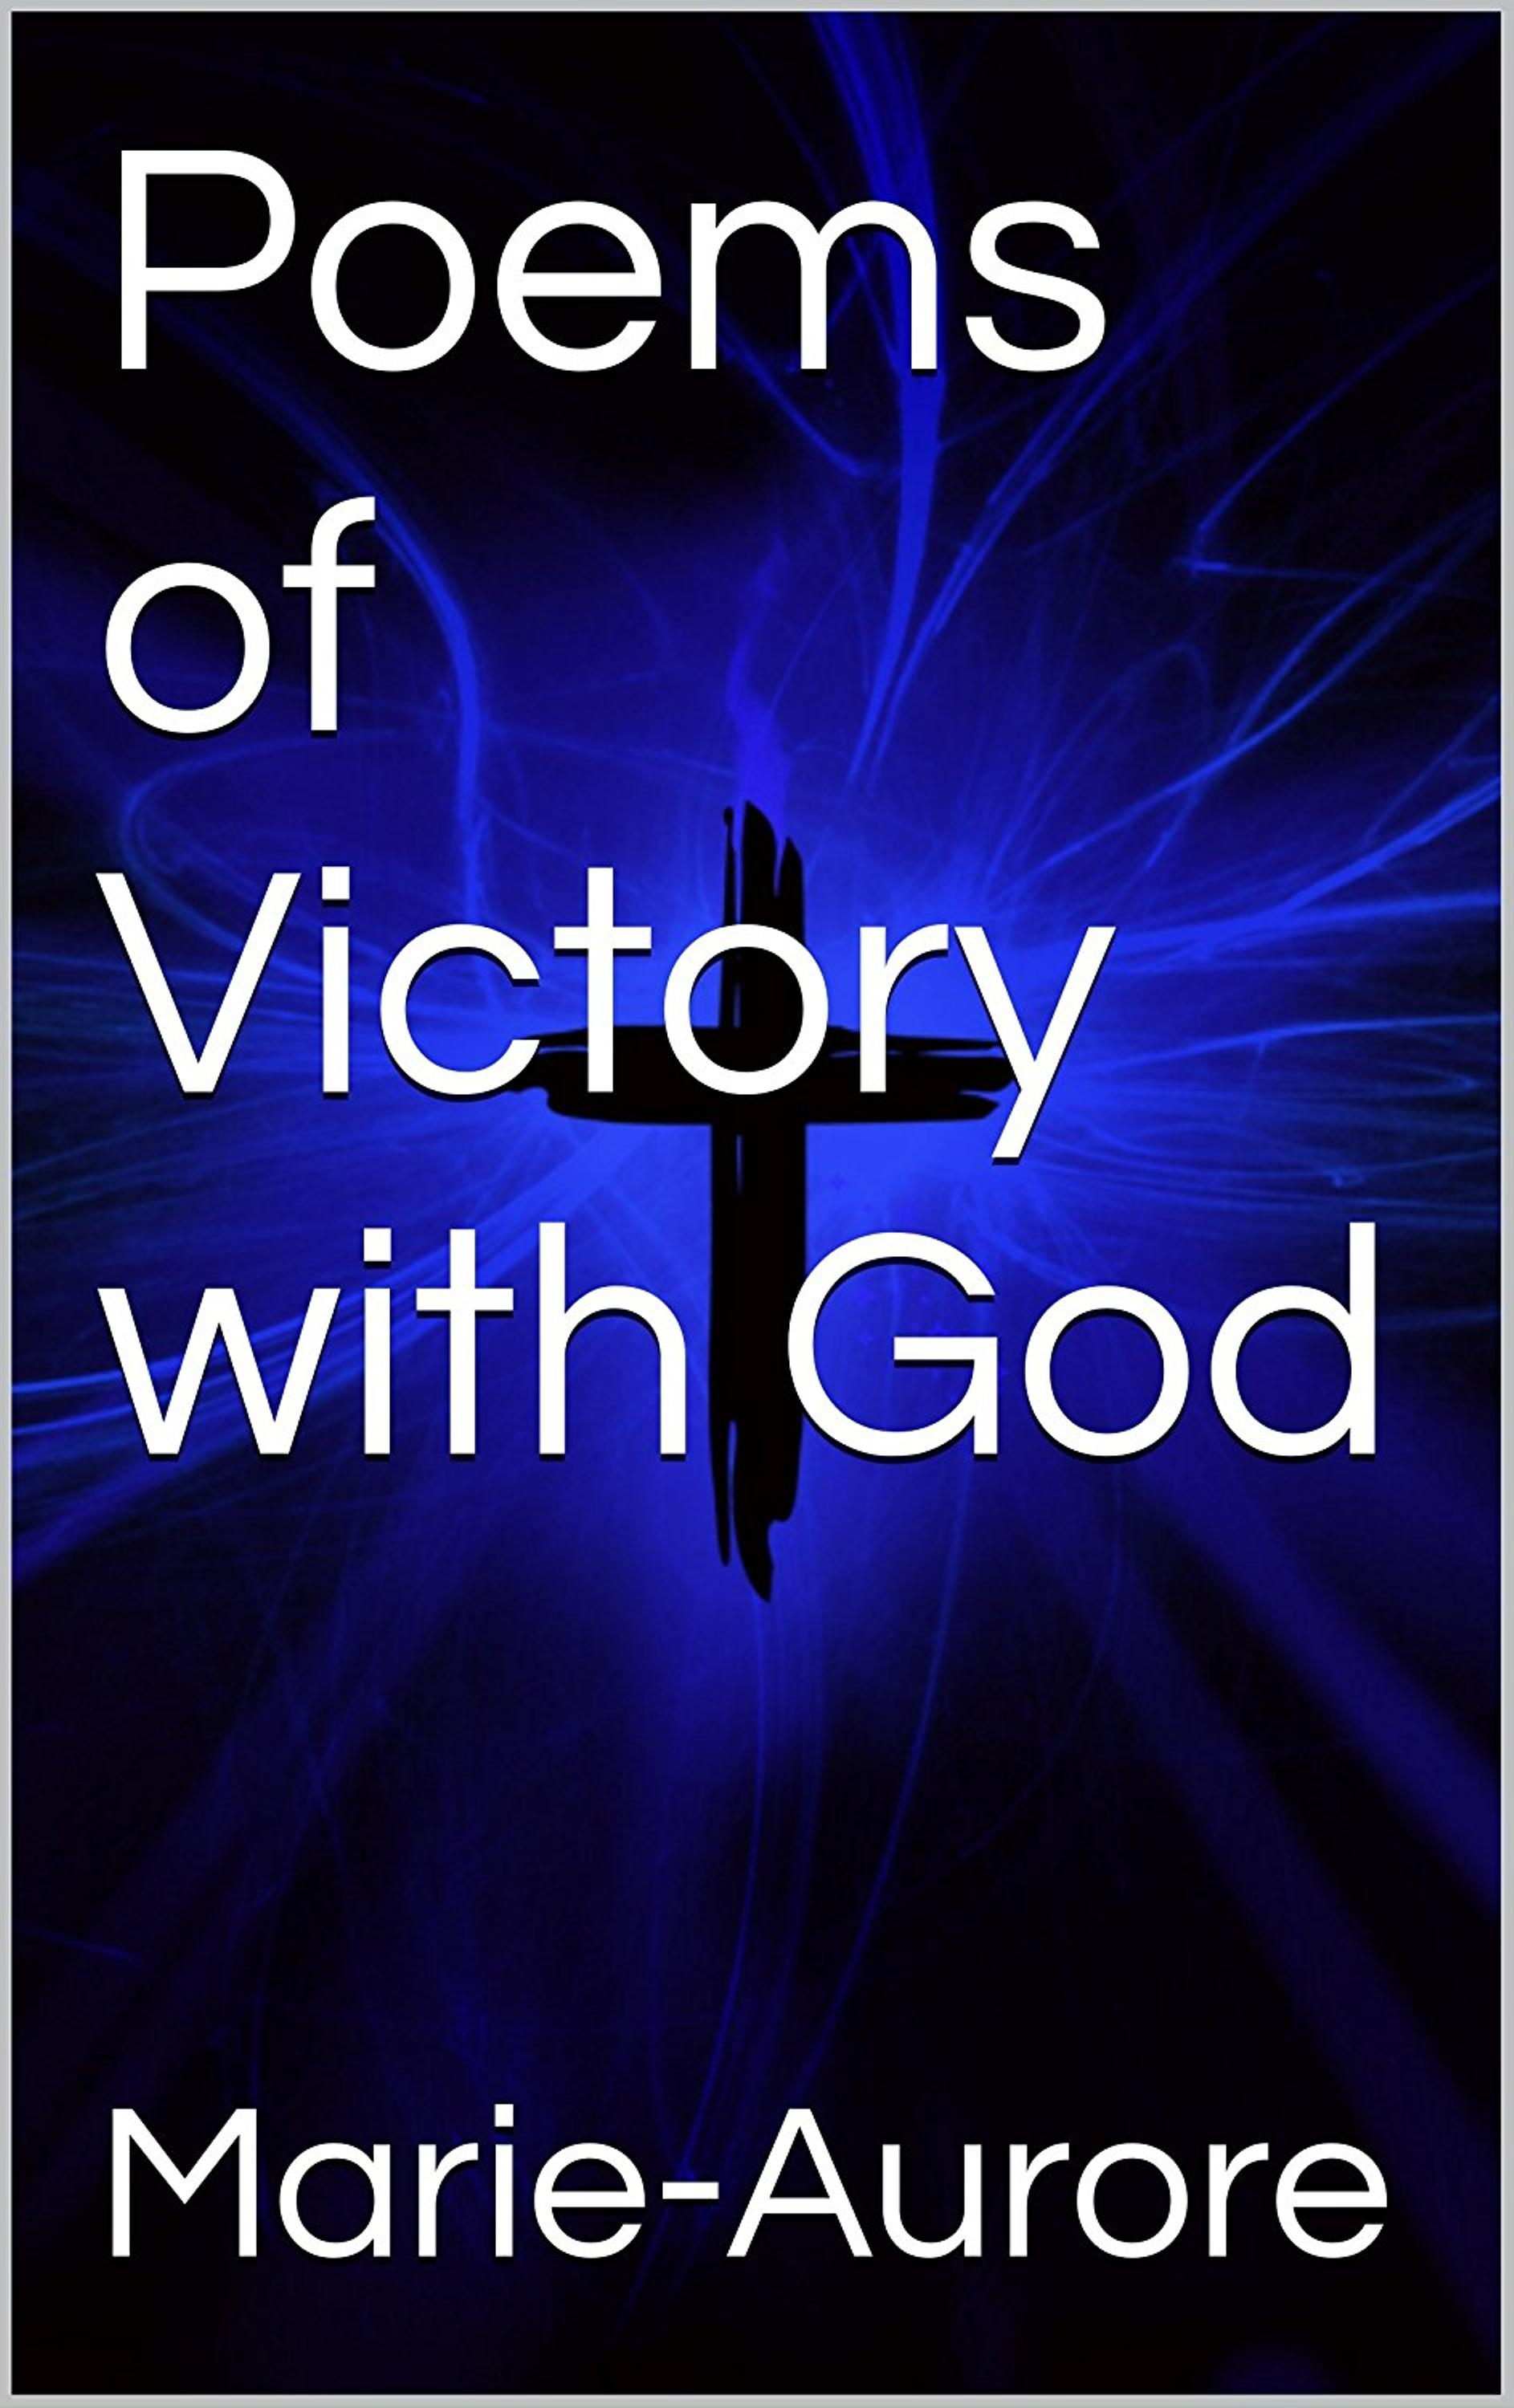 Poems of Victory with God, an Ebook by Marie-Aurore